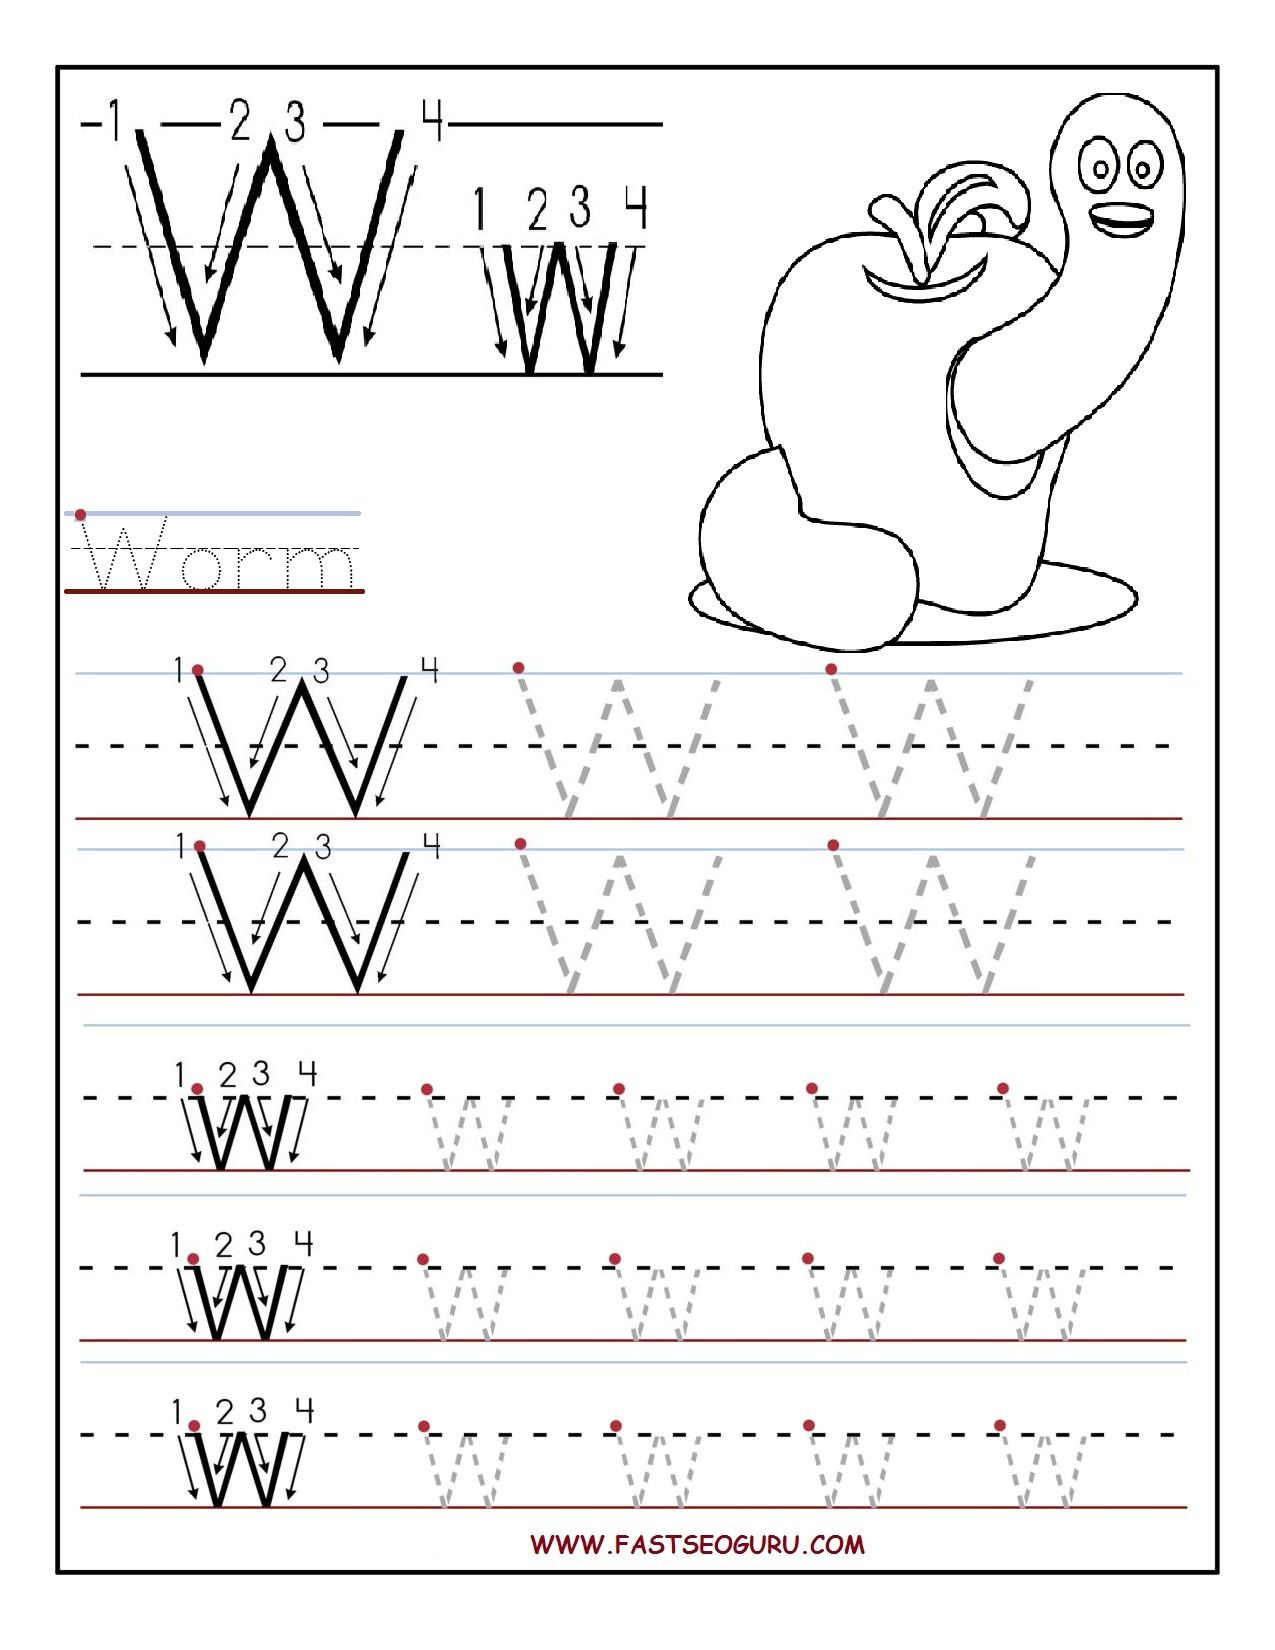 Printable Letter W Tracing Worksheets For Preschool